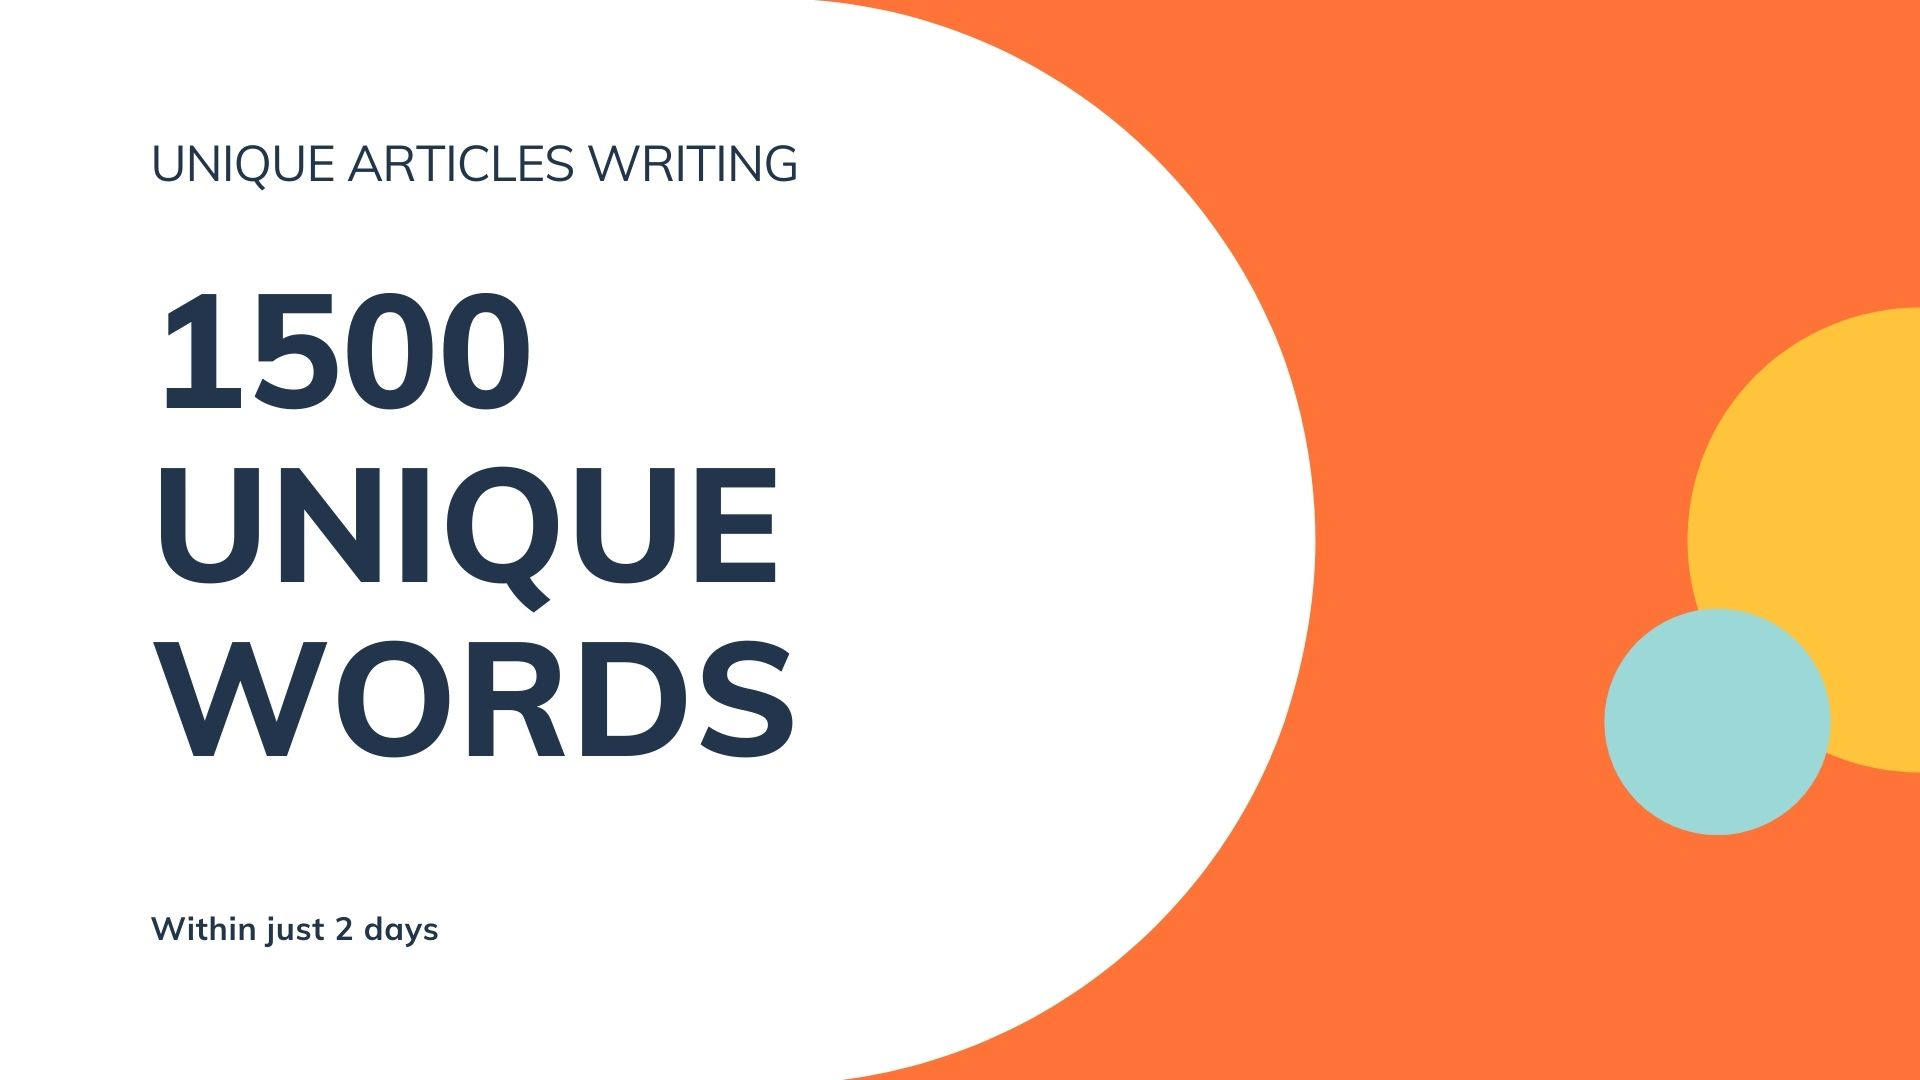 1500 Words Well-researched Article For Blog or Website